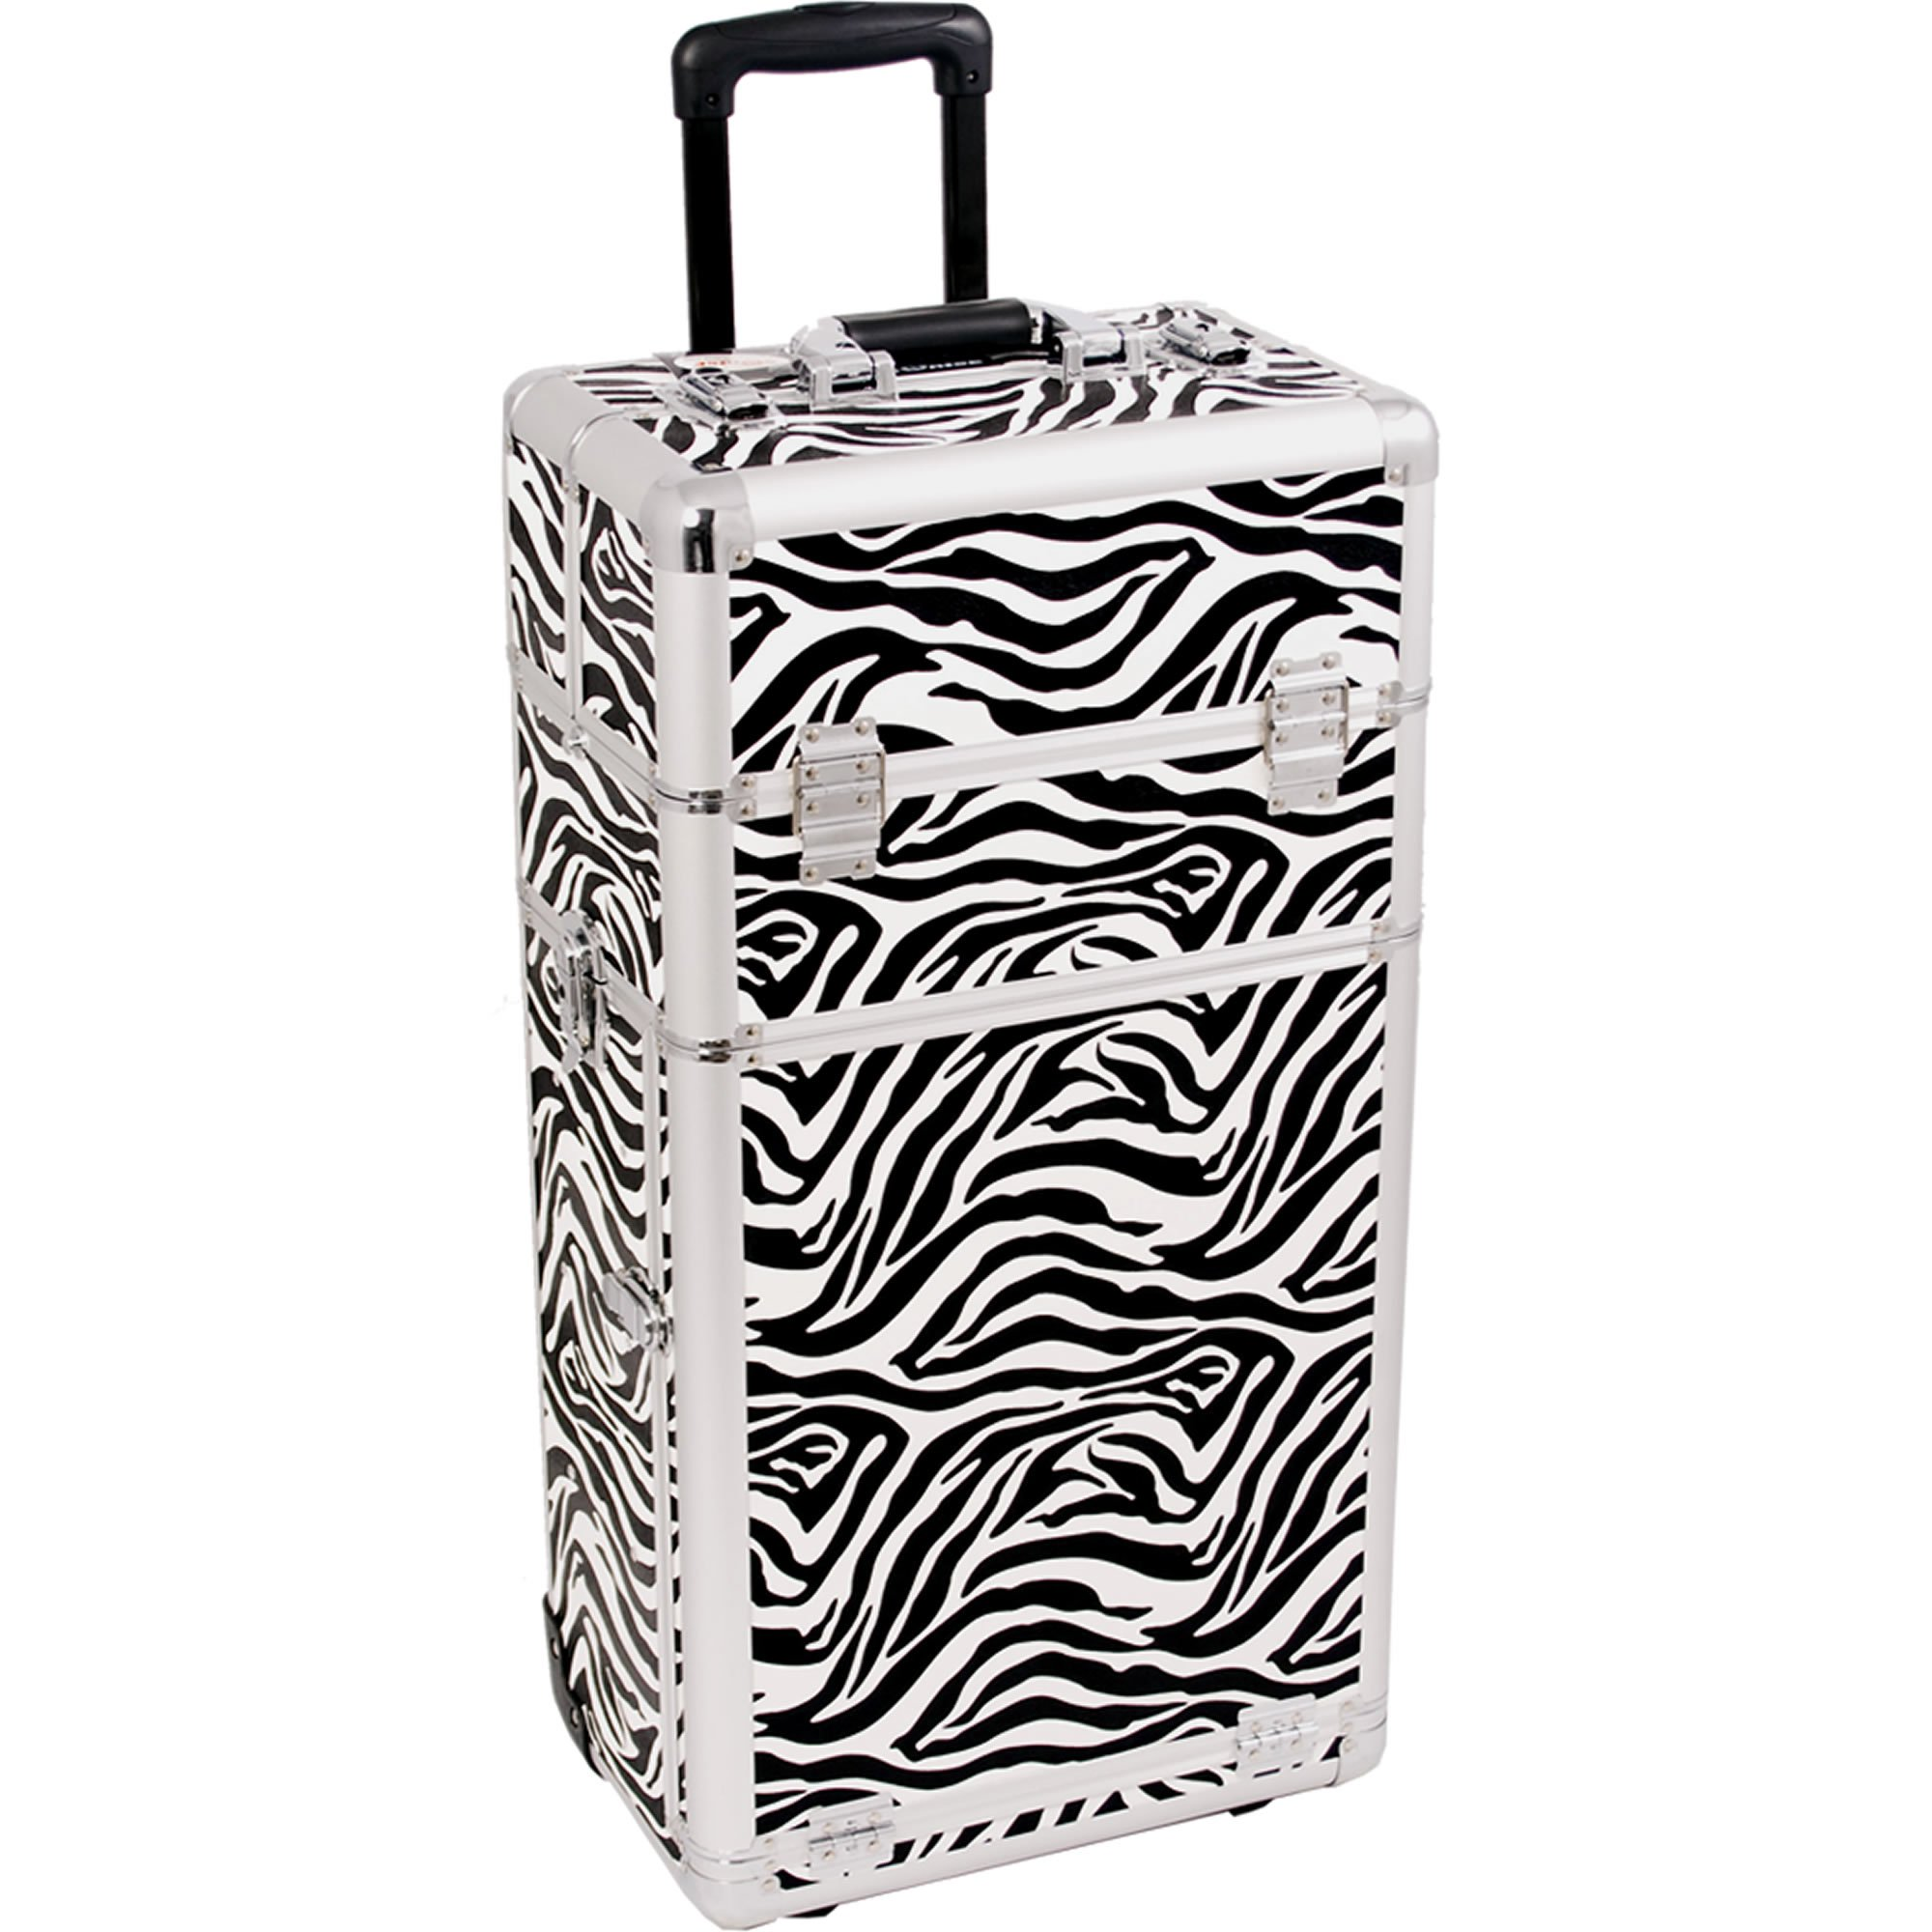 SUNRISE Makeup Case on Wheels I3562 2 in 1 Professional Artist, 3 Trays and 4 Drawers, Brush Holder, Locking with 2 Mirrors and Shoulder Strap, White Zebra by SunRise